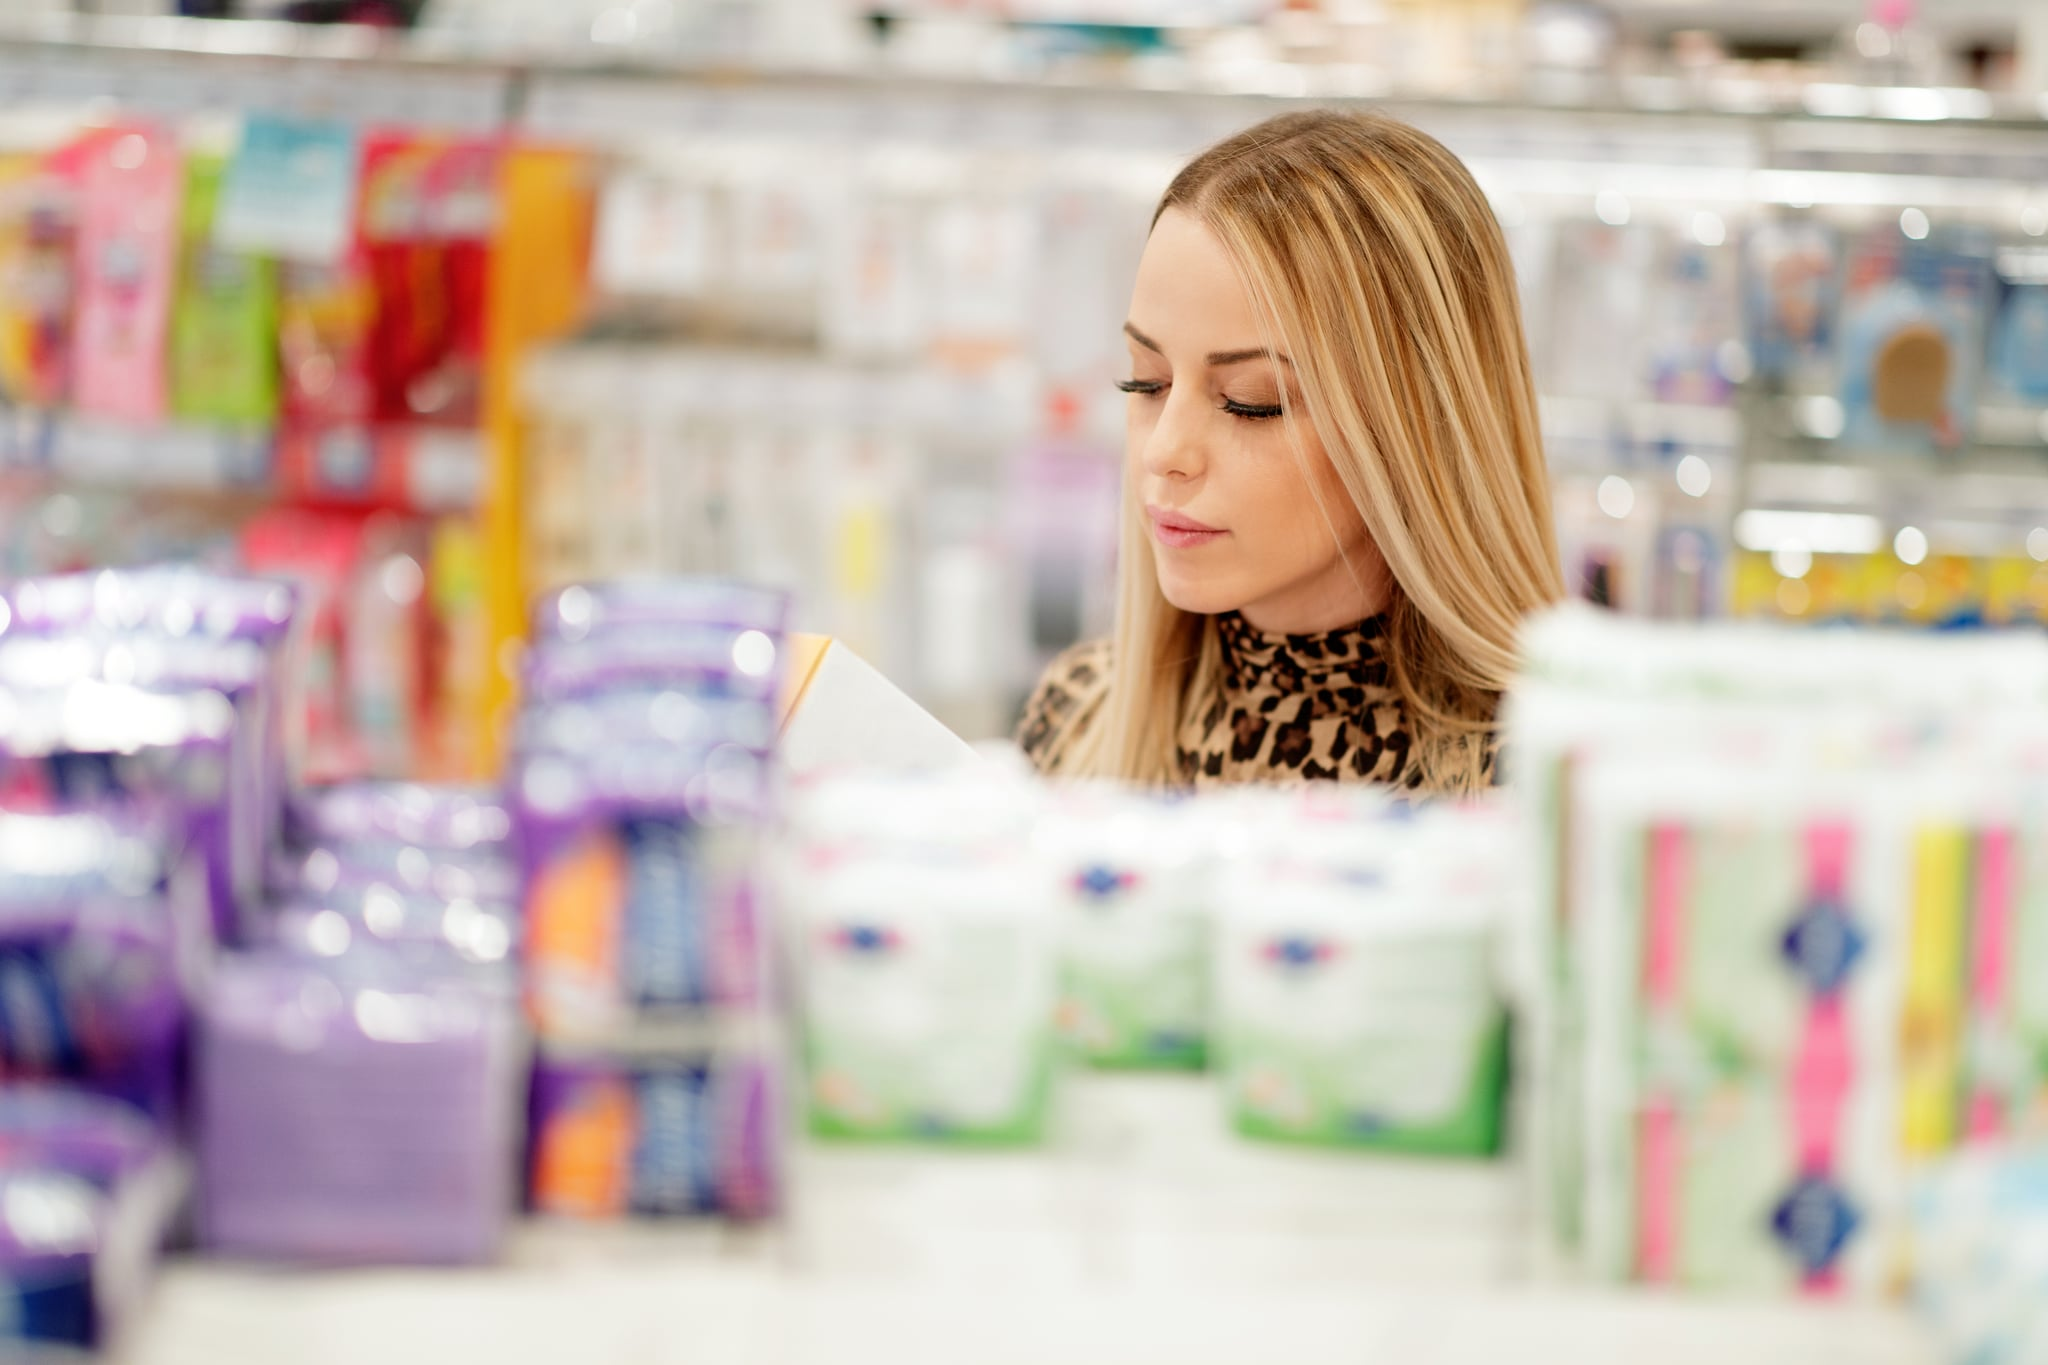 Blonde woman shopping in pharmacy, copy space